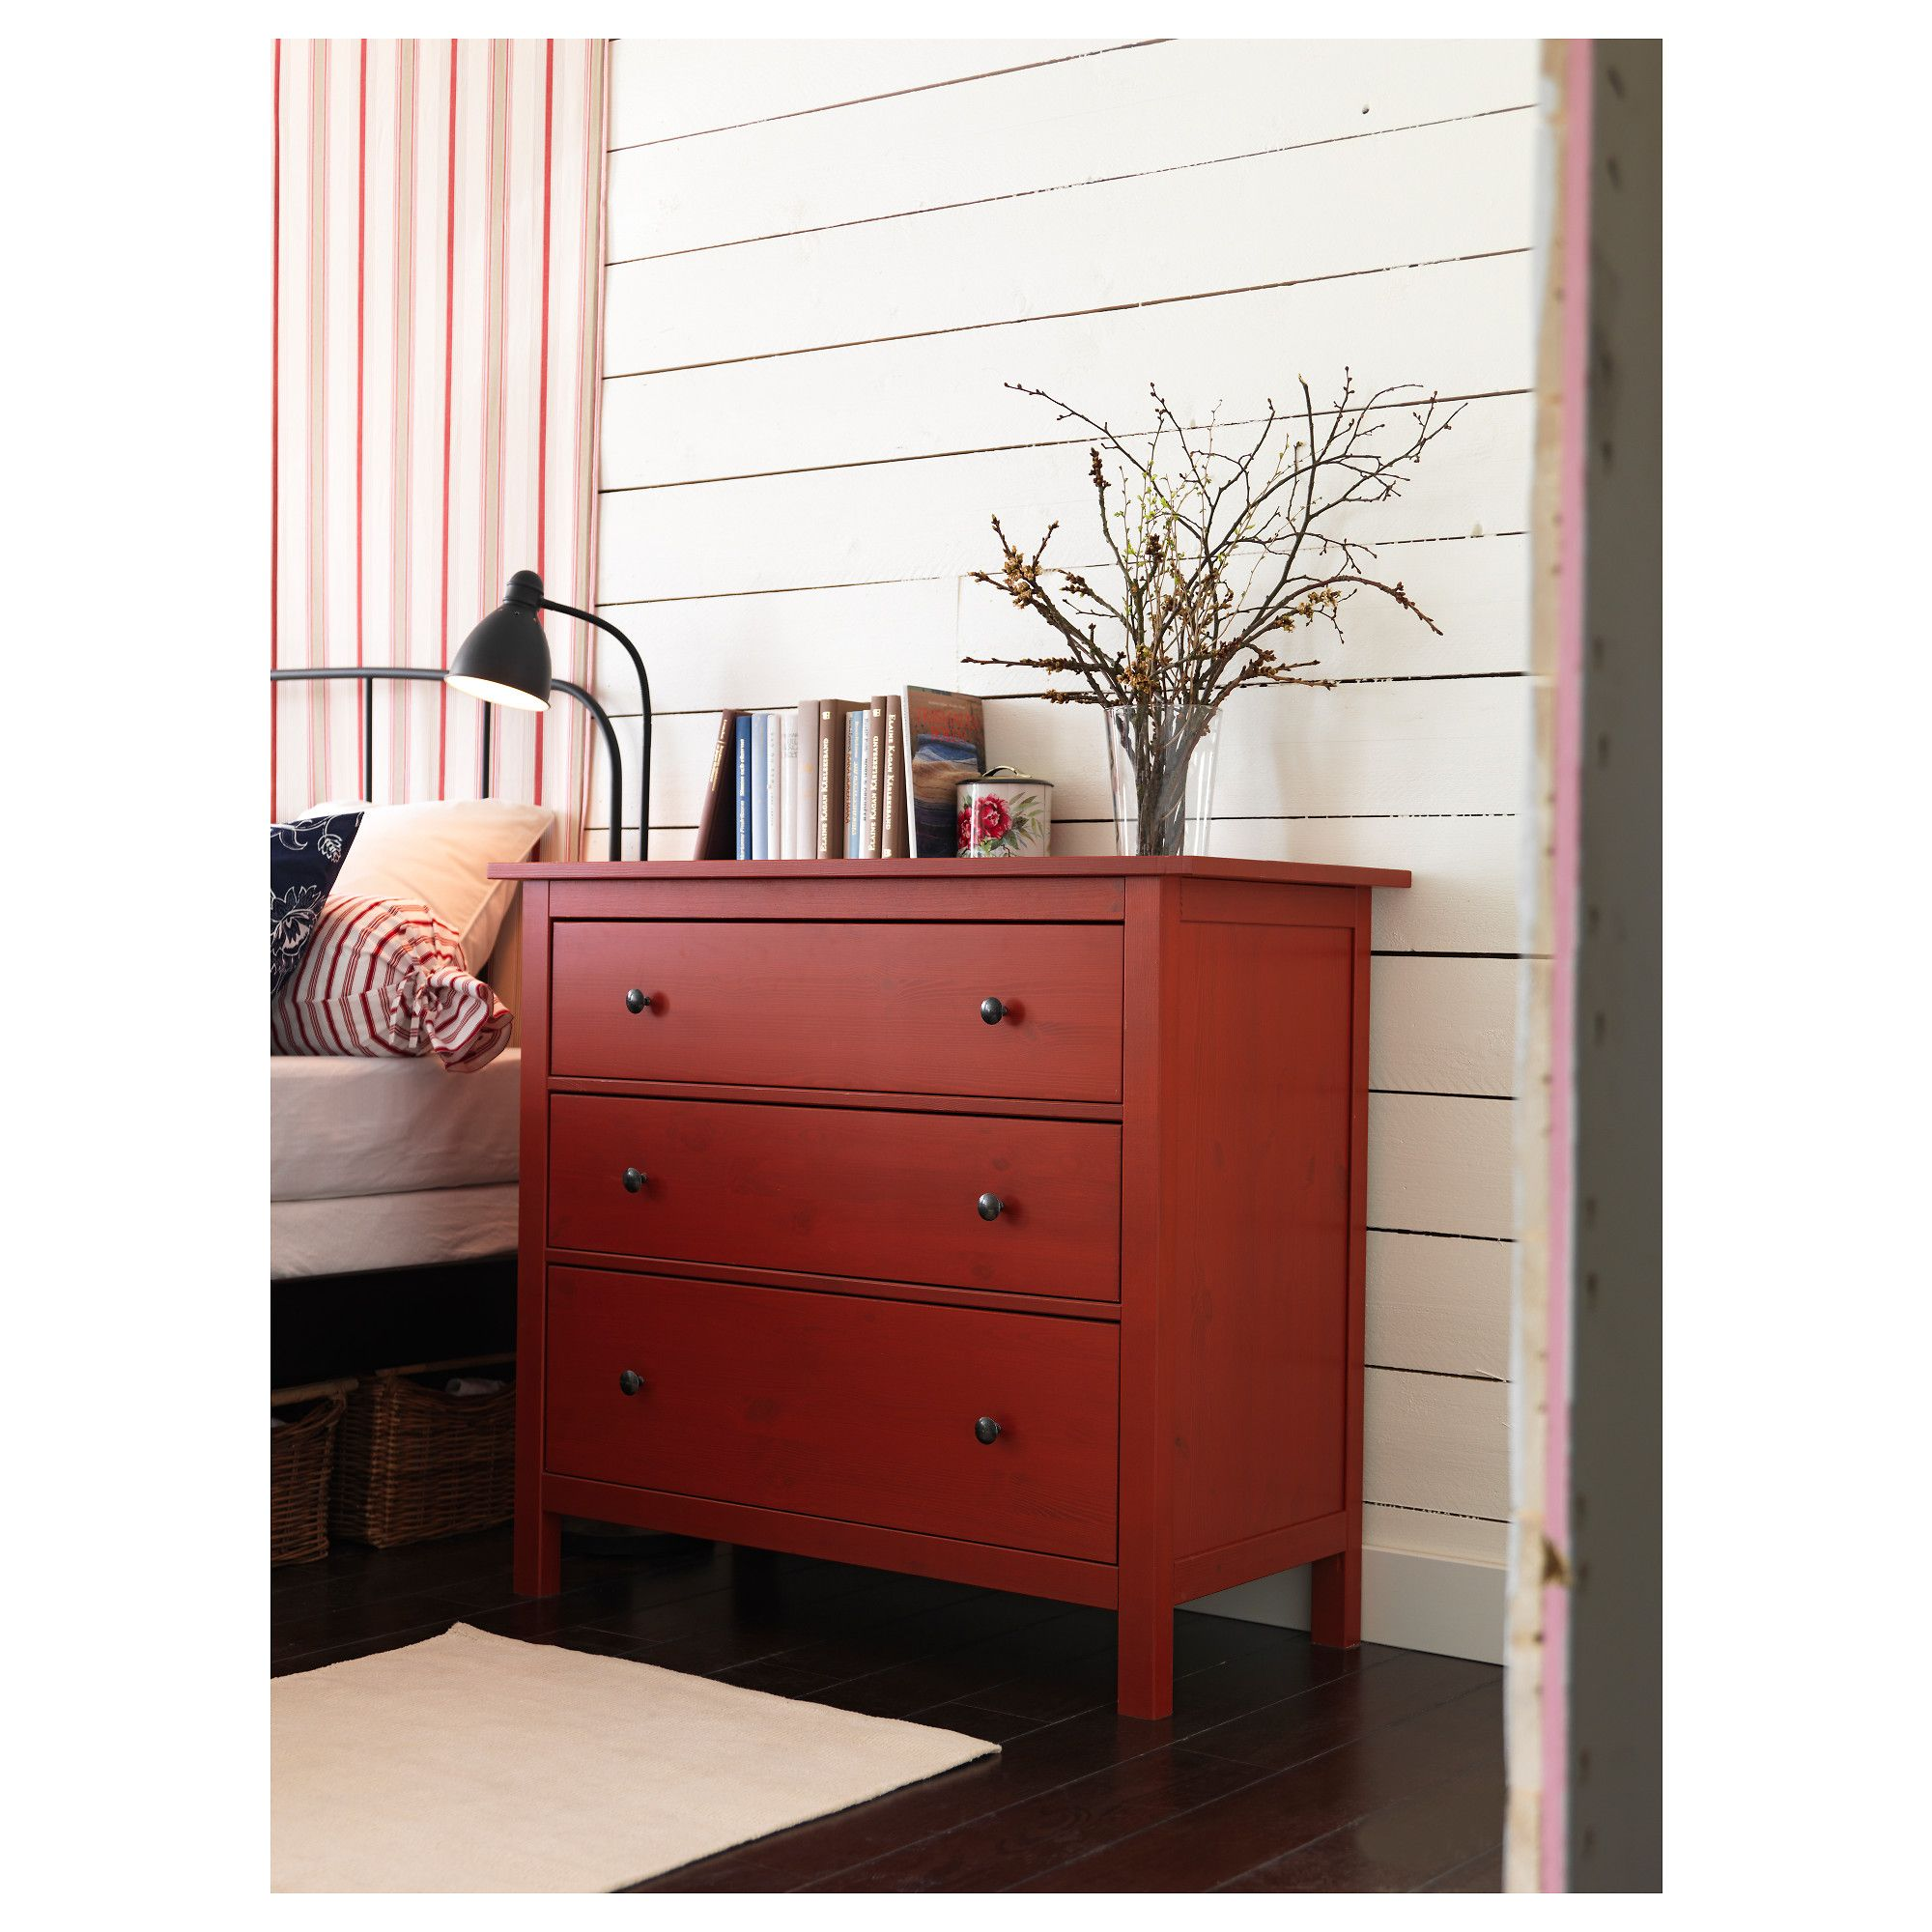 bedroom hack tarva palms ikea dresser to pines dressers